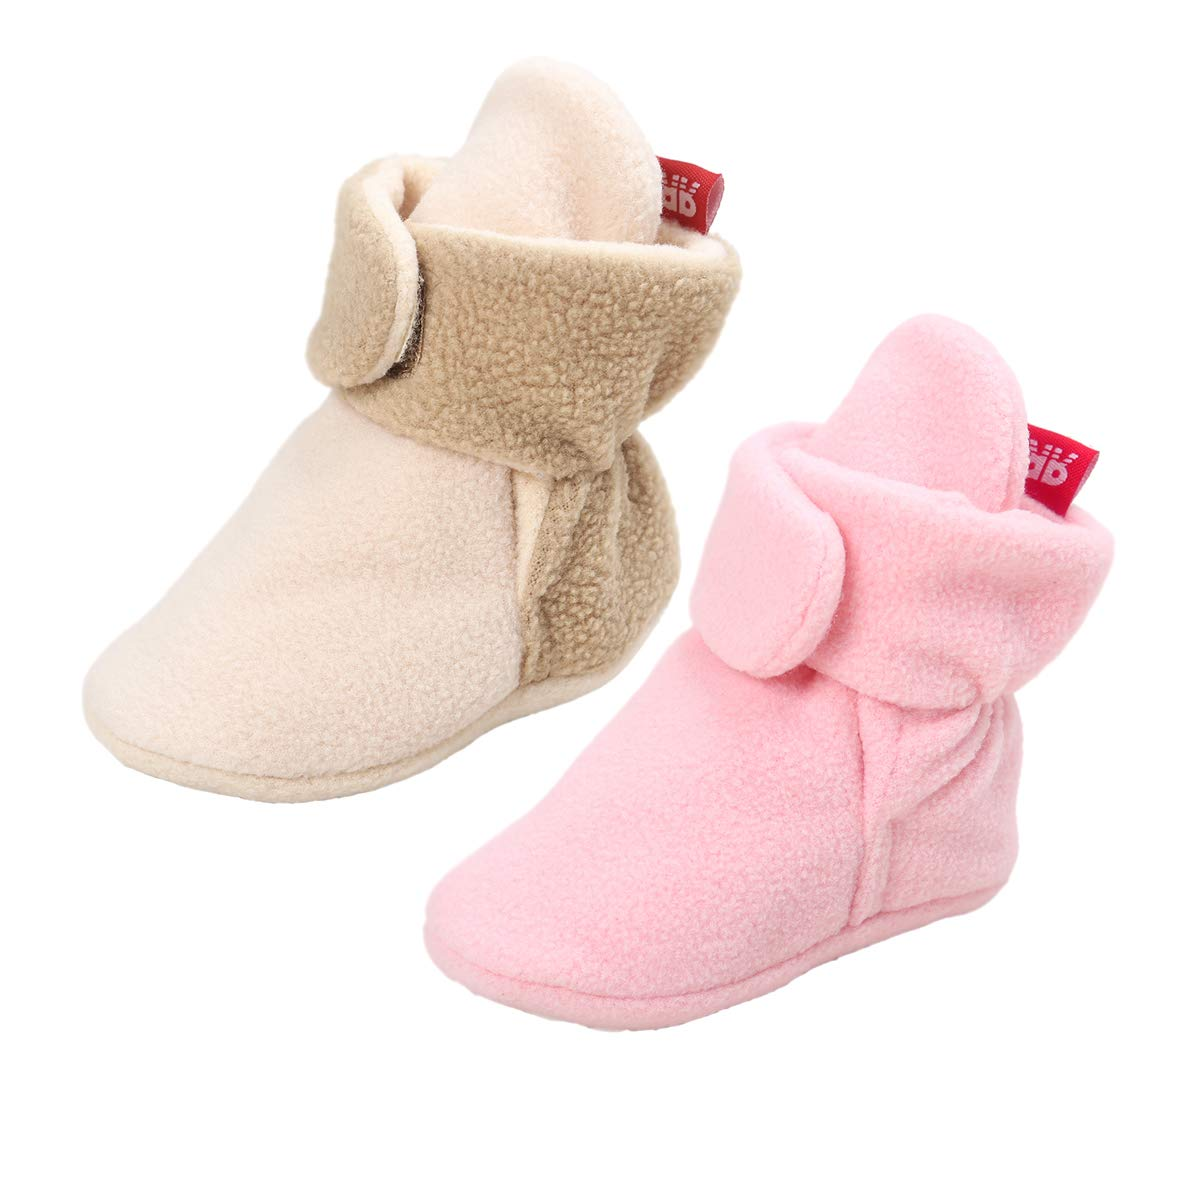 Tutoo Unisex-Baby Newborn Fleece Bootie Infant Boys Girls Winter Warm Cotton Slippers Soft First Walkers Shoes (5.1 inches(12-18 Months), 2 Pairs(Pink+Beige))